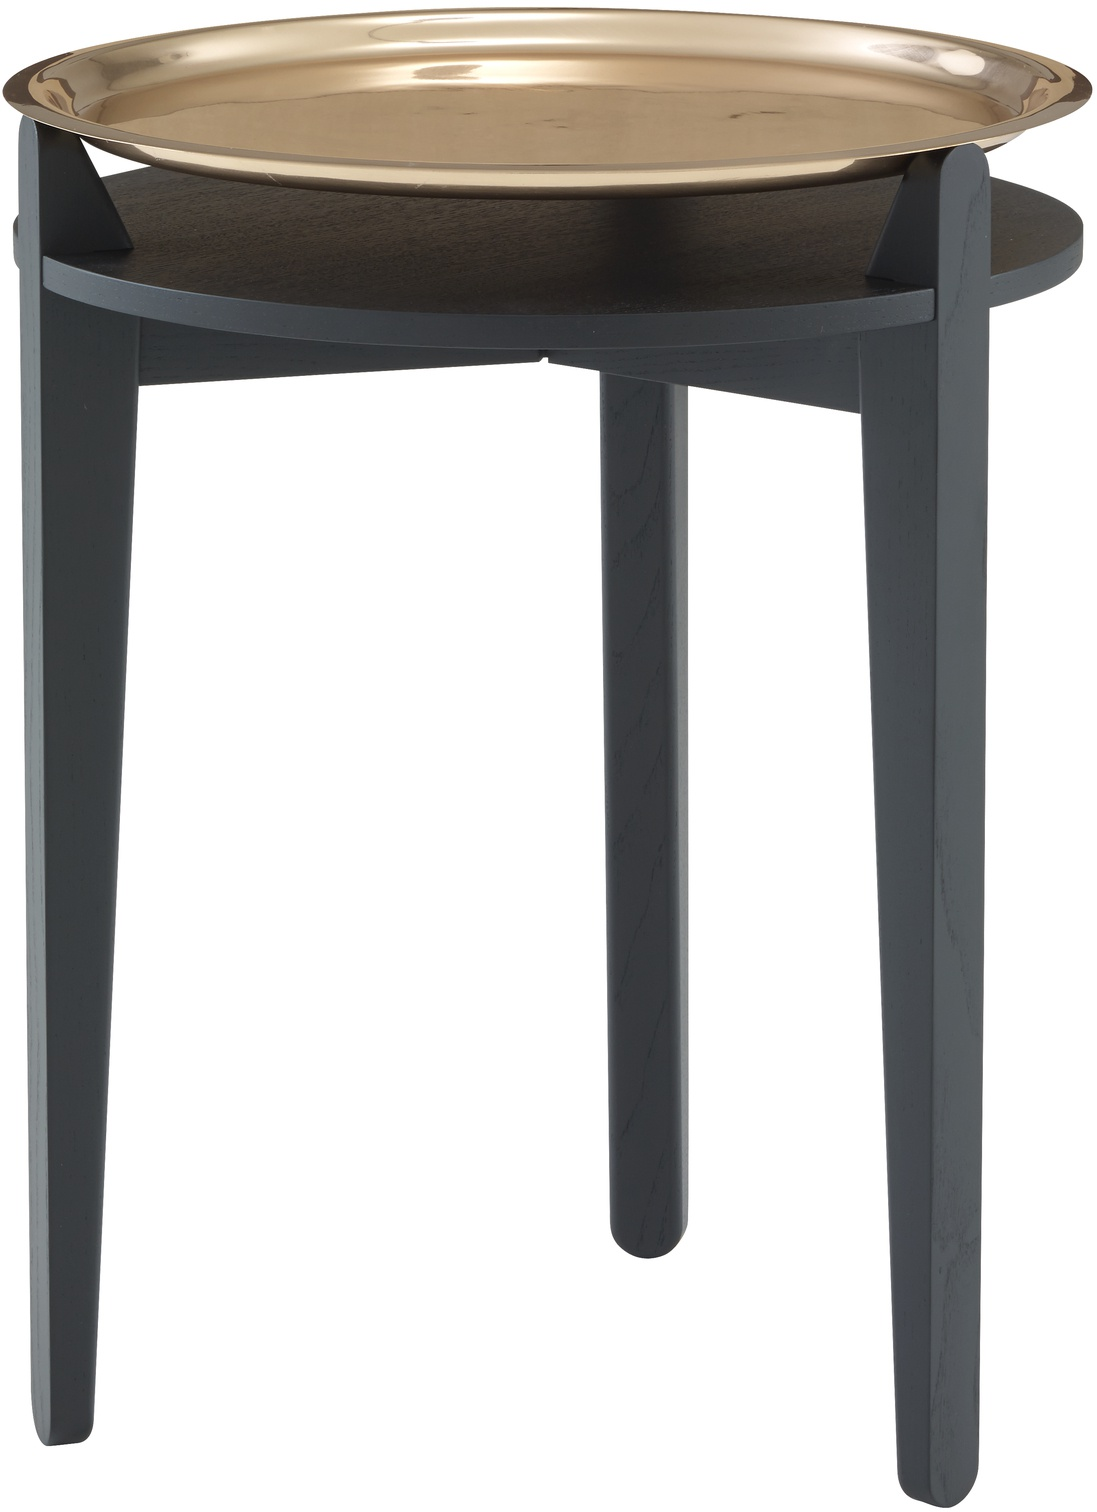 side table occasional tables from designer jan christian delfs ligne roset official site. Black Bedroom Furniture Sets. Home Design Ideas